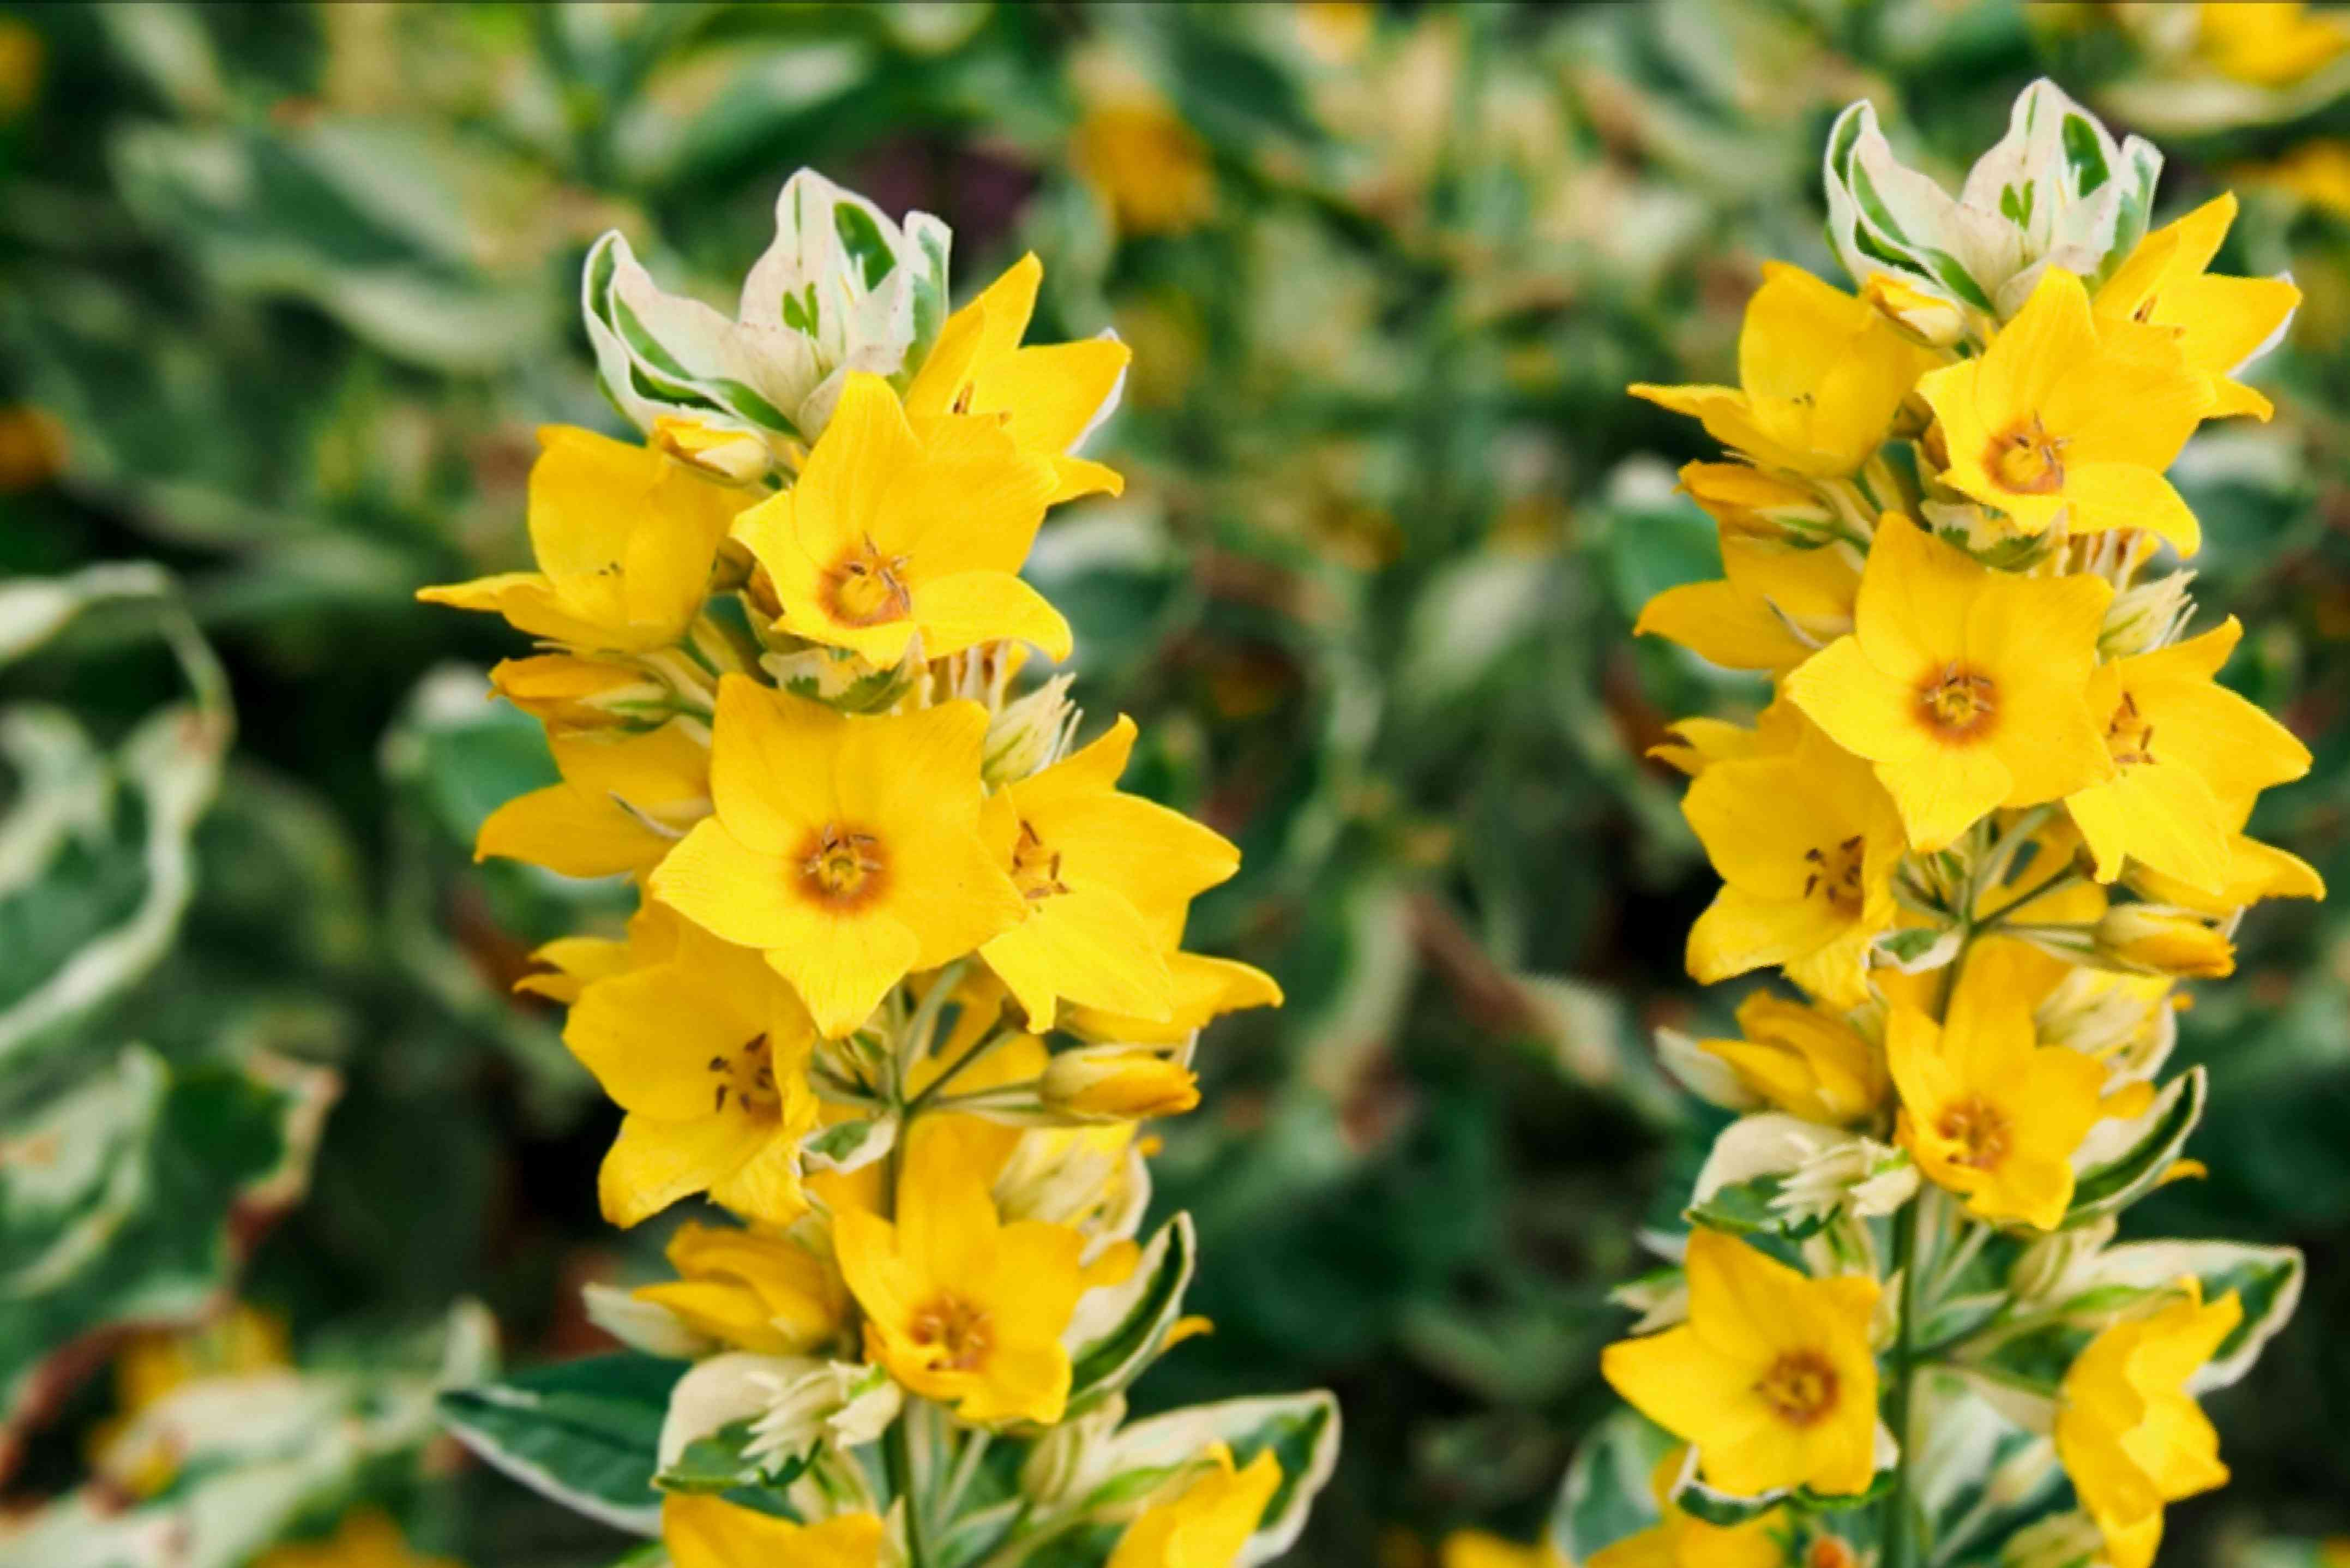 Variegated lysimachia plant stems topped with yellow star-like flowers and white marbled leaves closeup